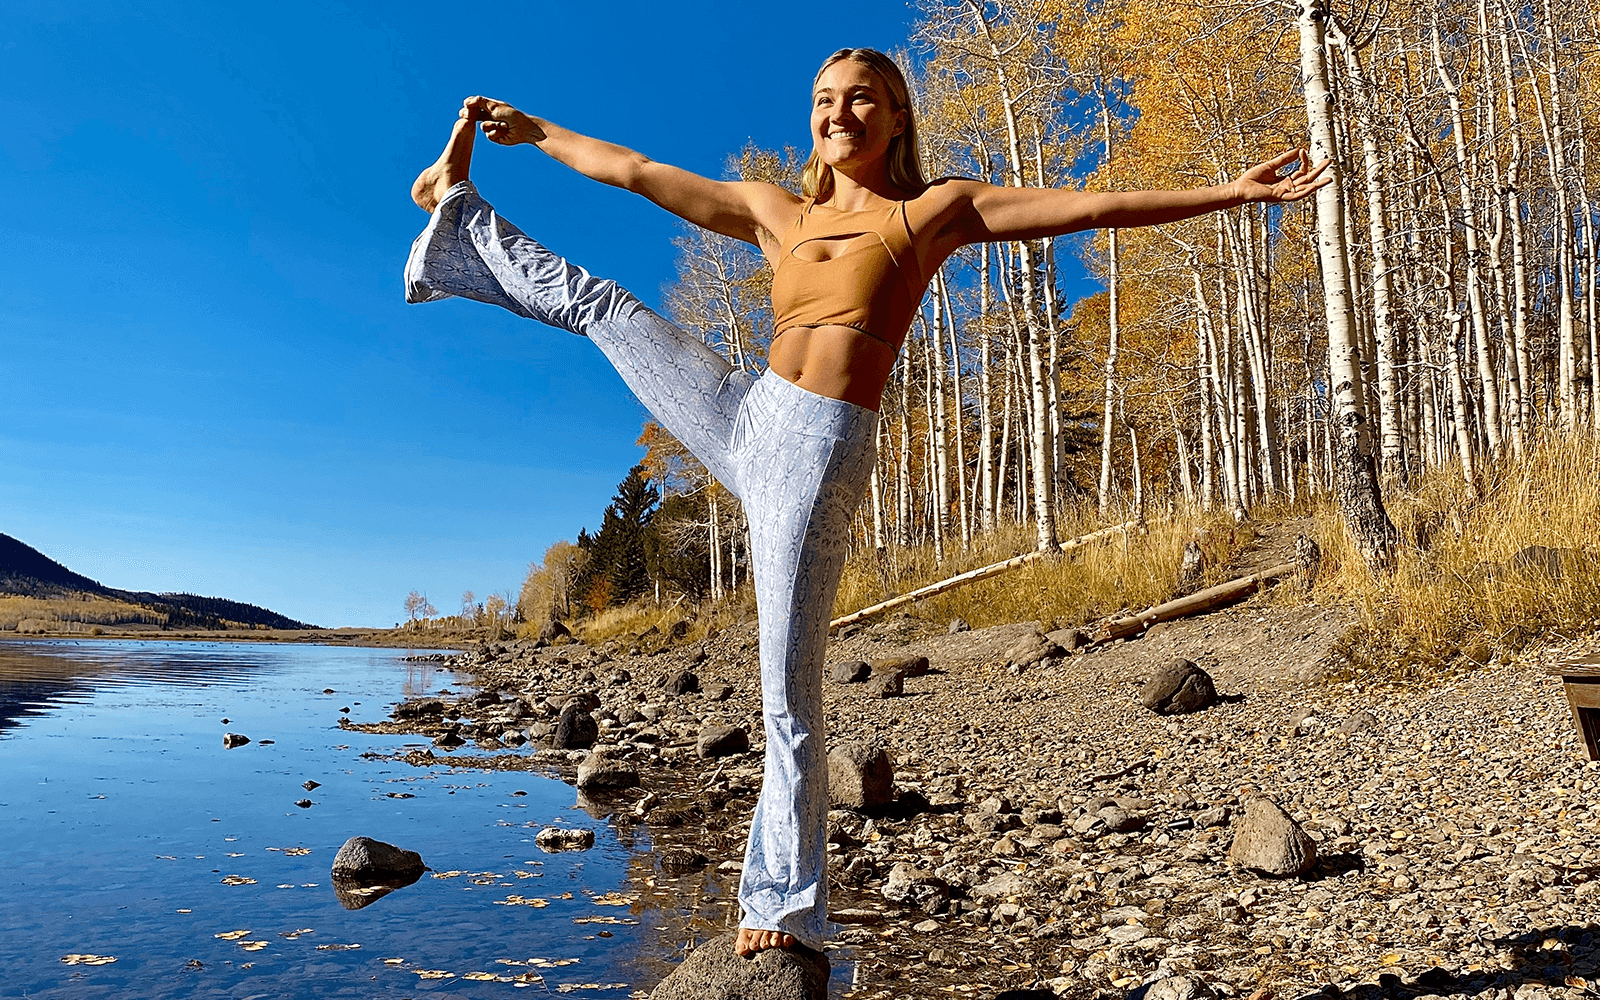 Wolven Sustainable Active and Swim wear yoga photographer Margo interview